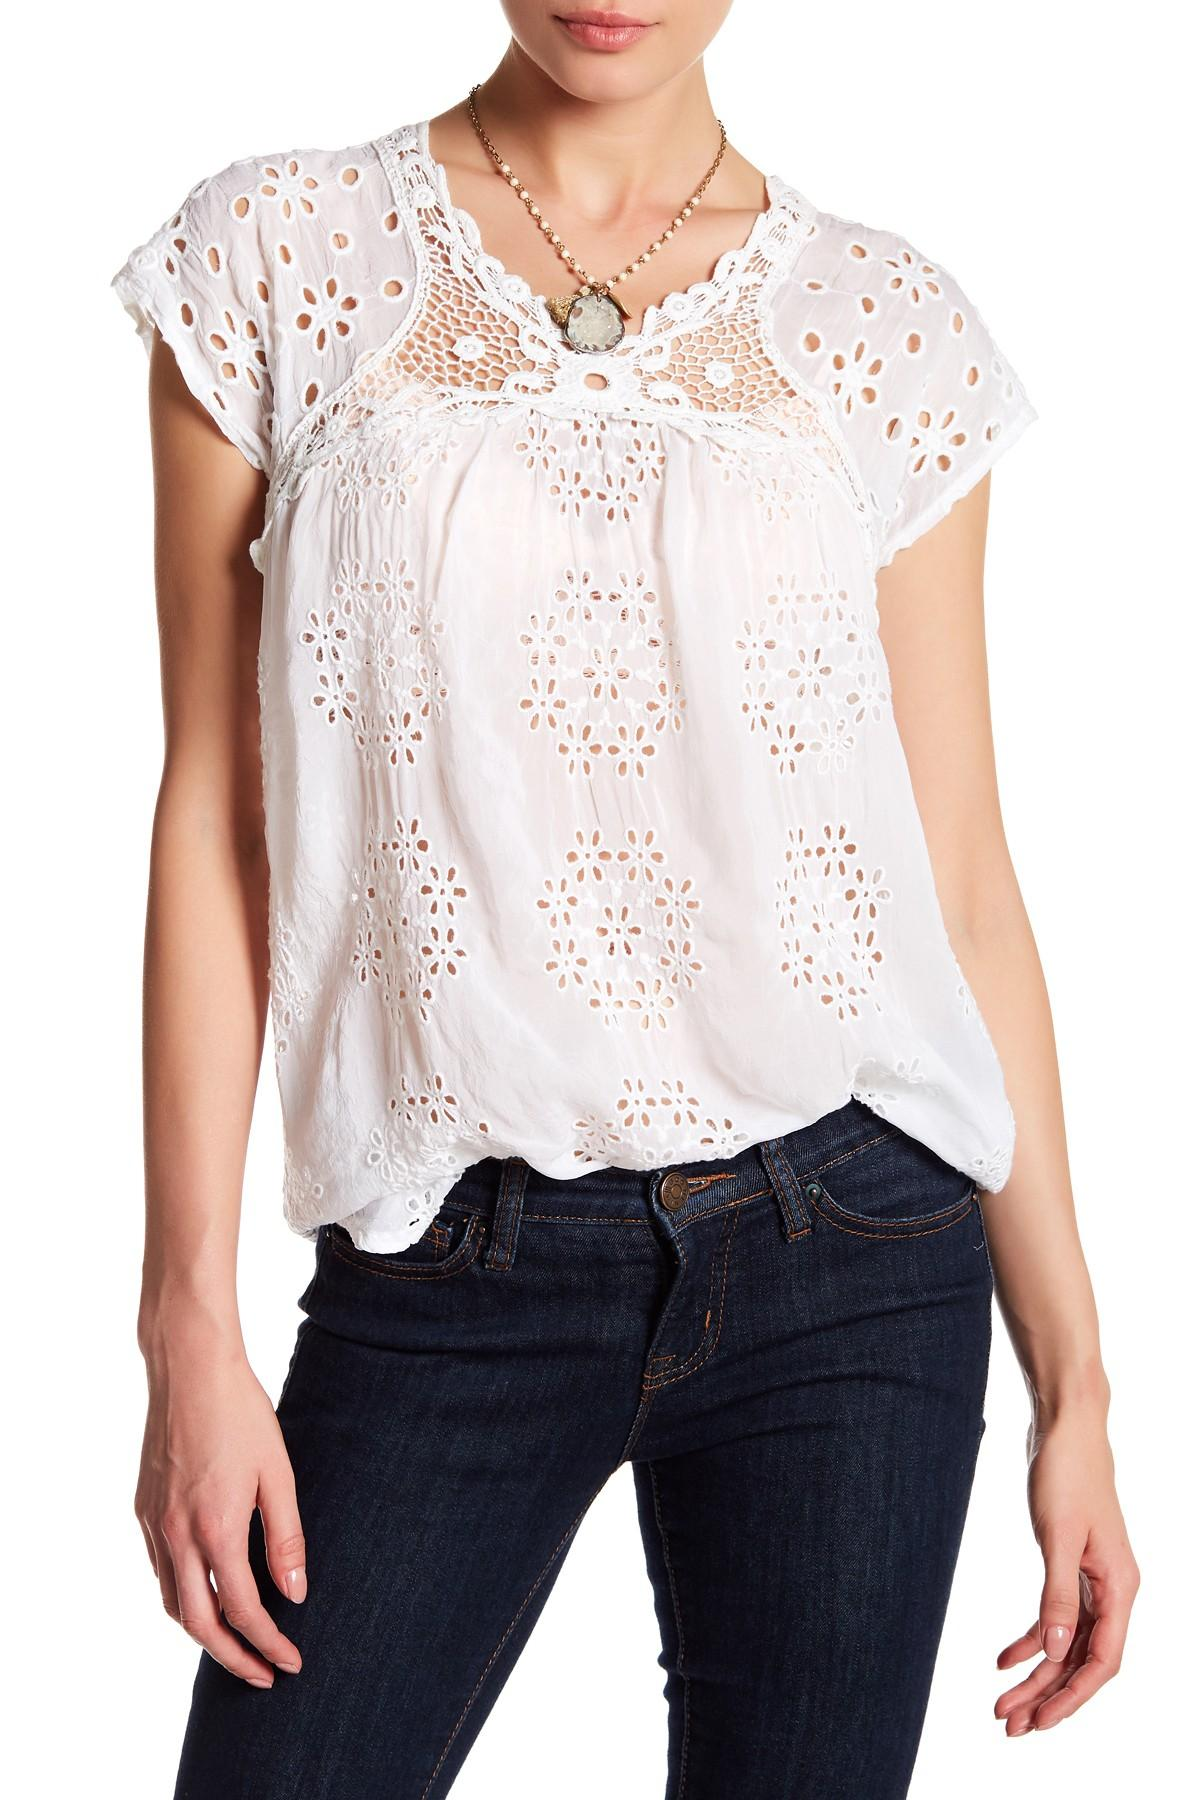 Lyst - Johnny Was Short Sleeve Embroidered Blouse in White